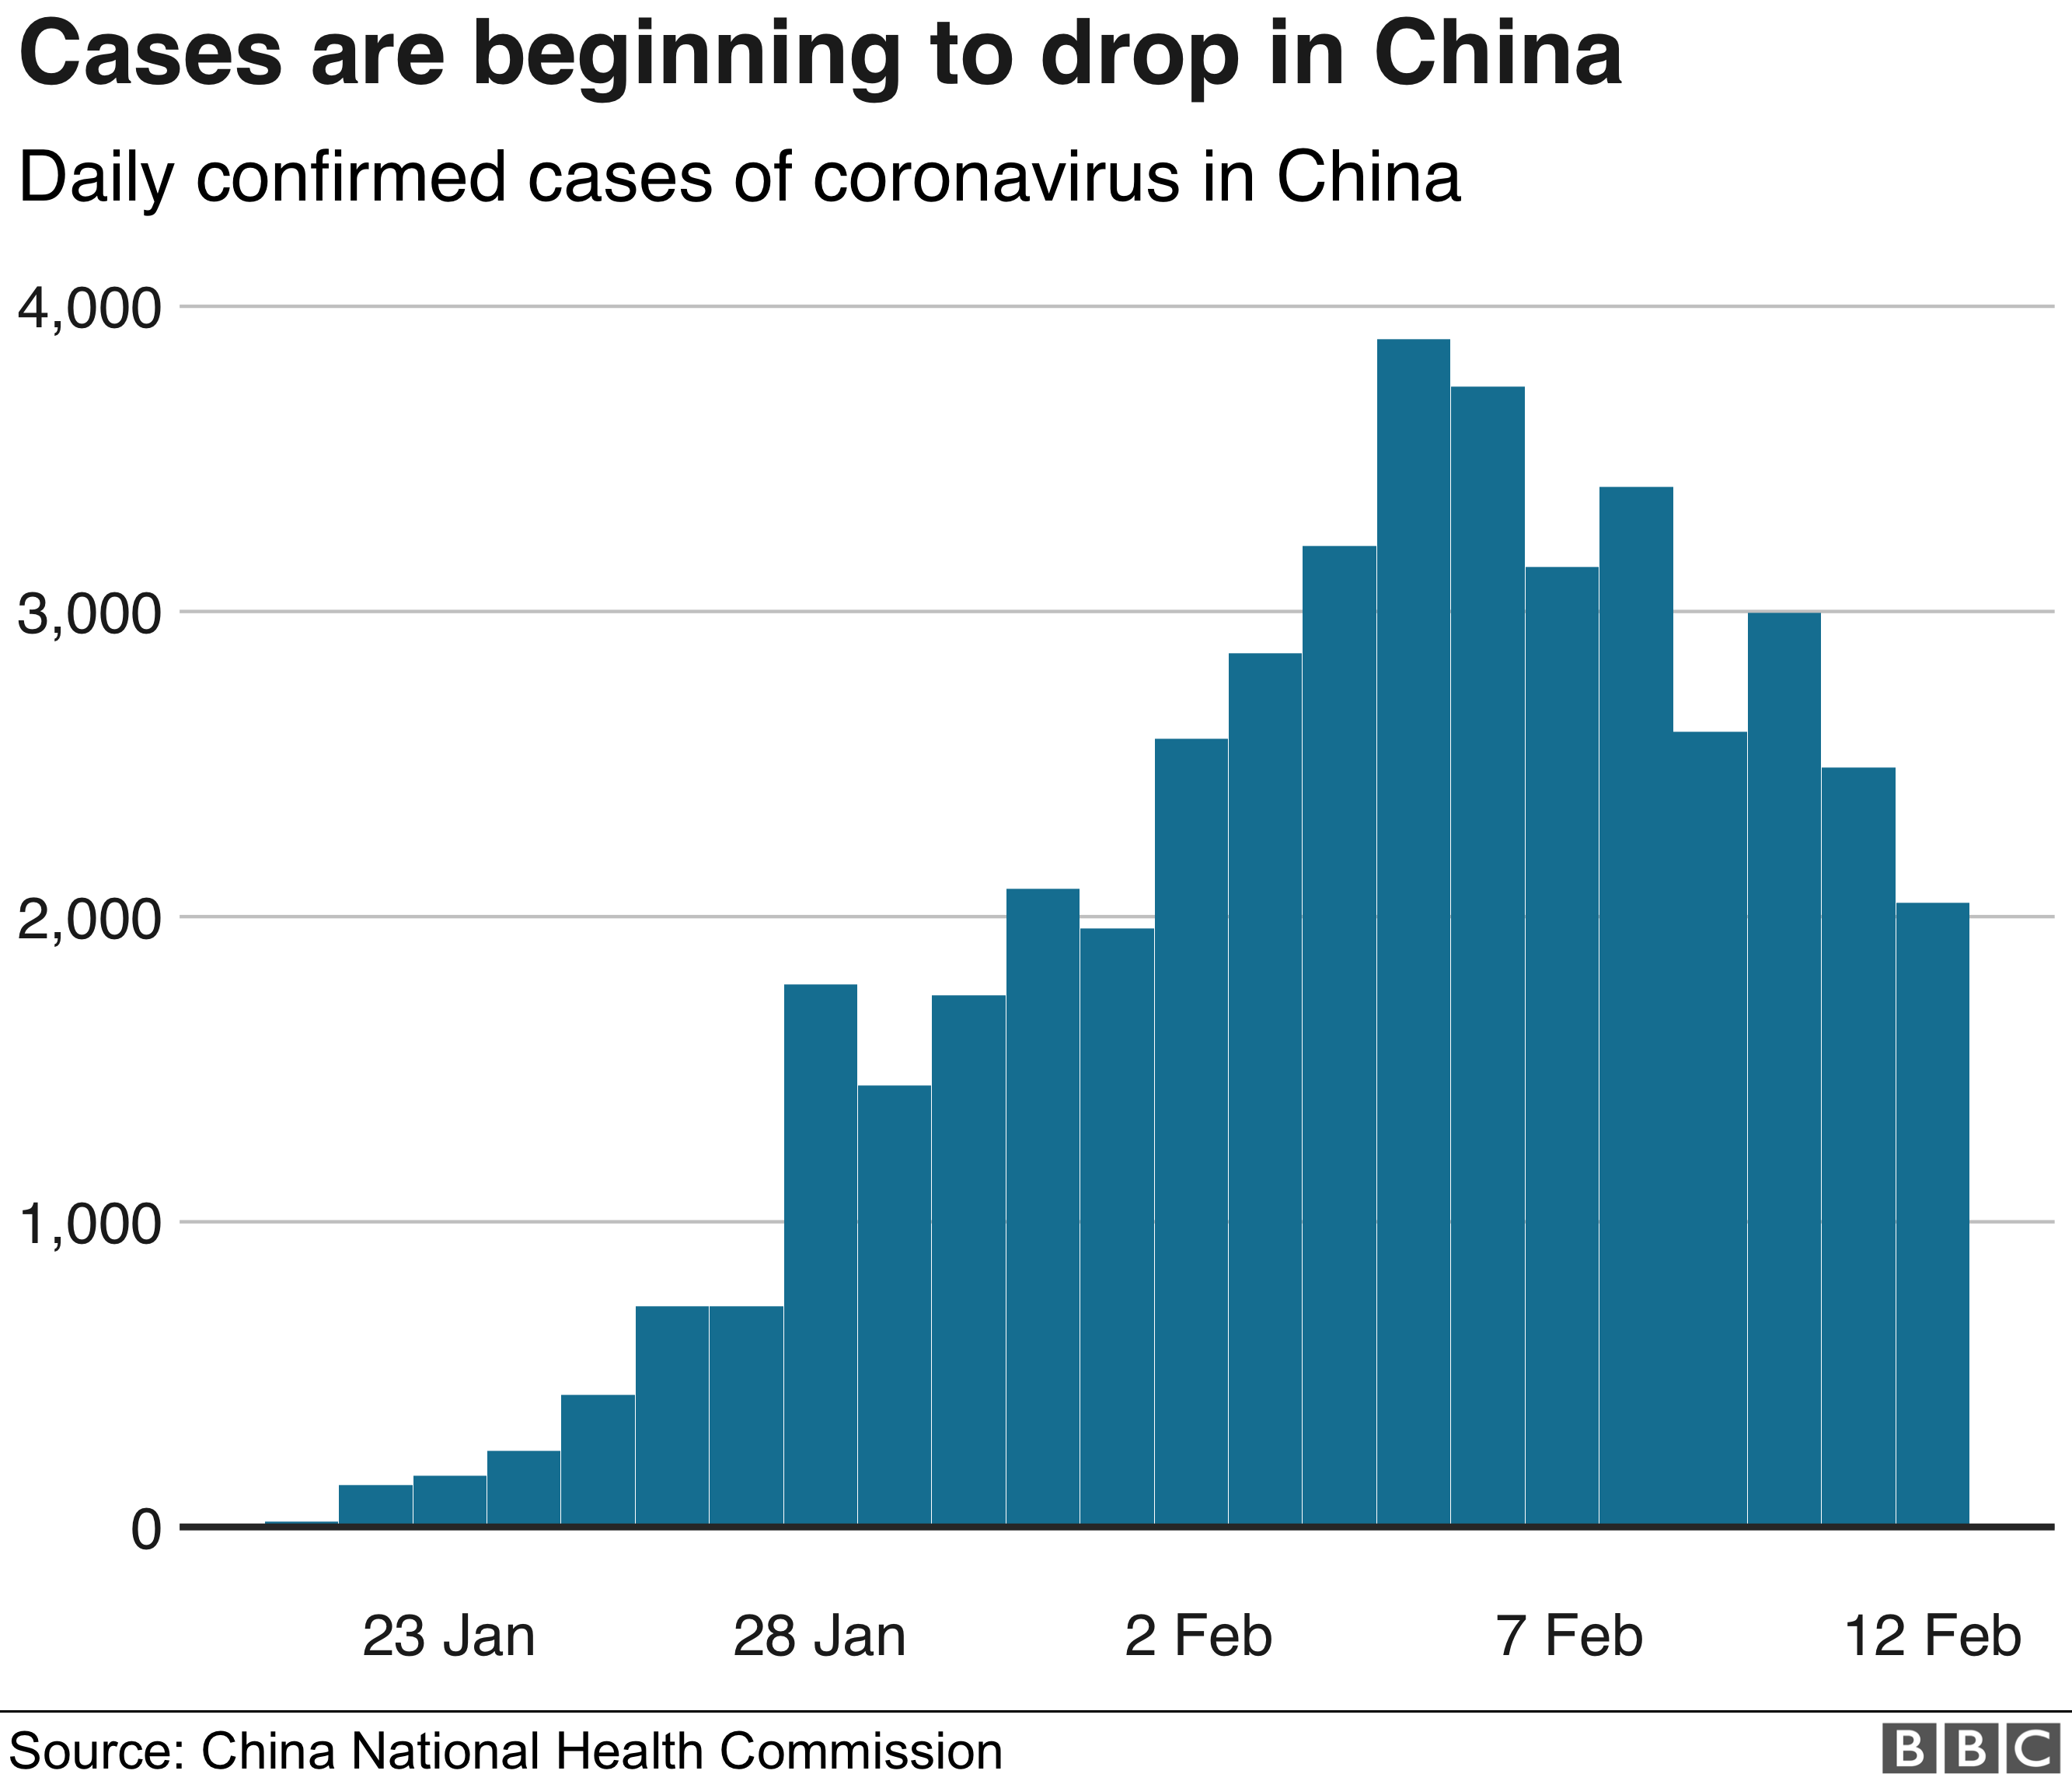 Chart showing daily confirmed cases of coronavirus in China